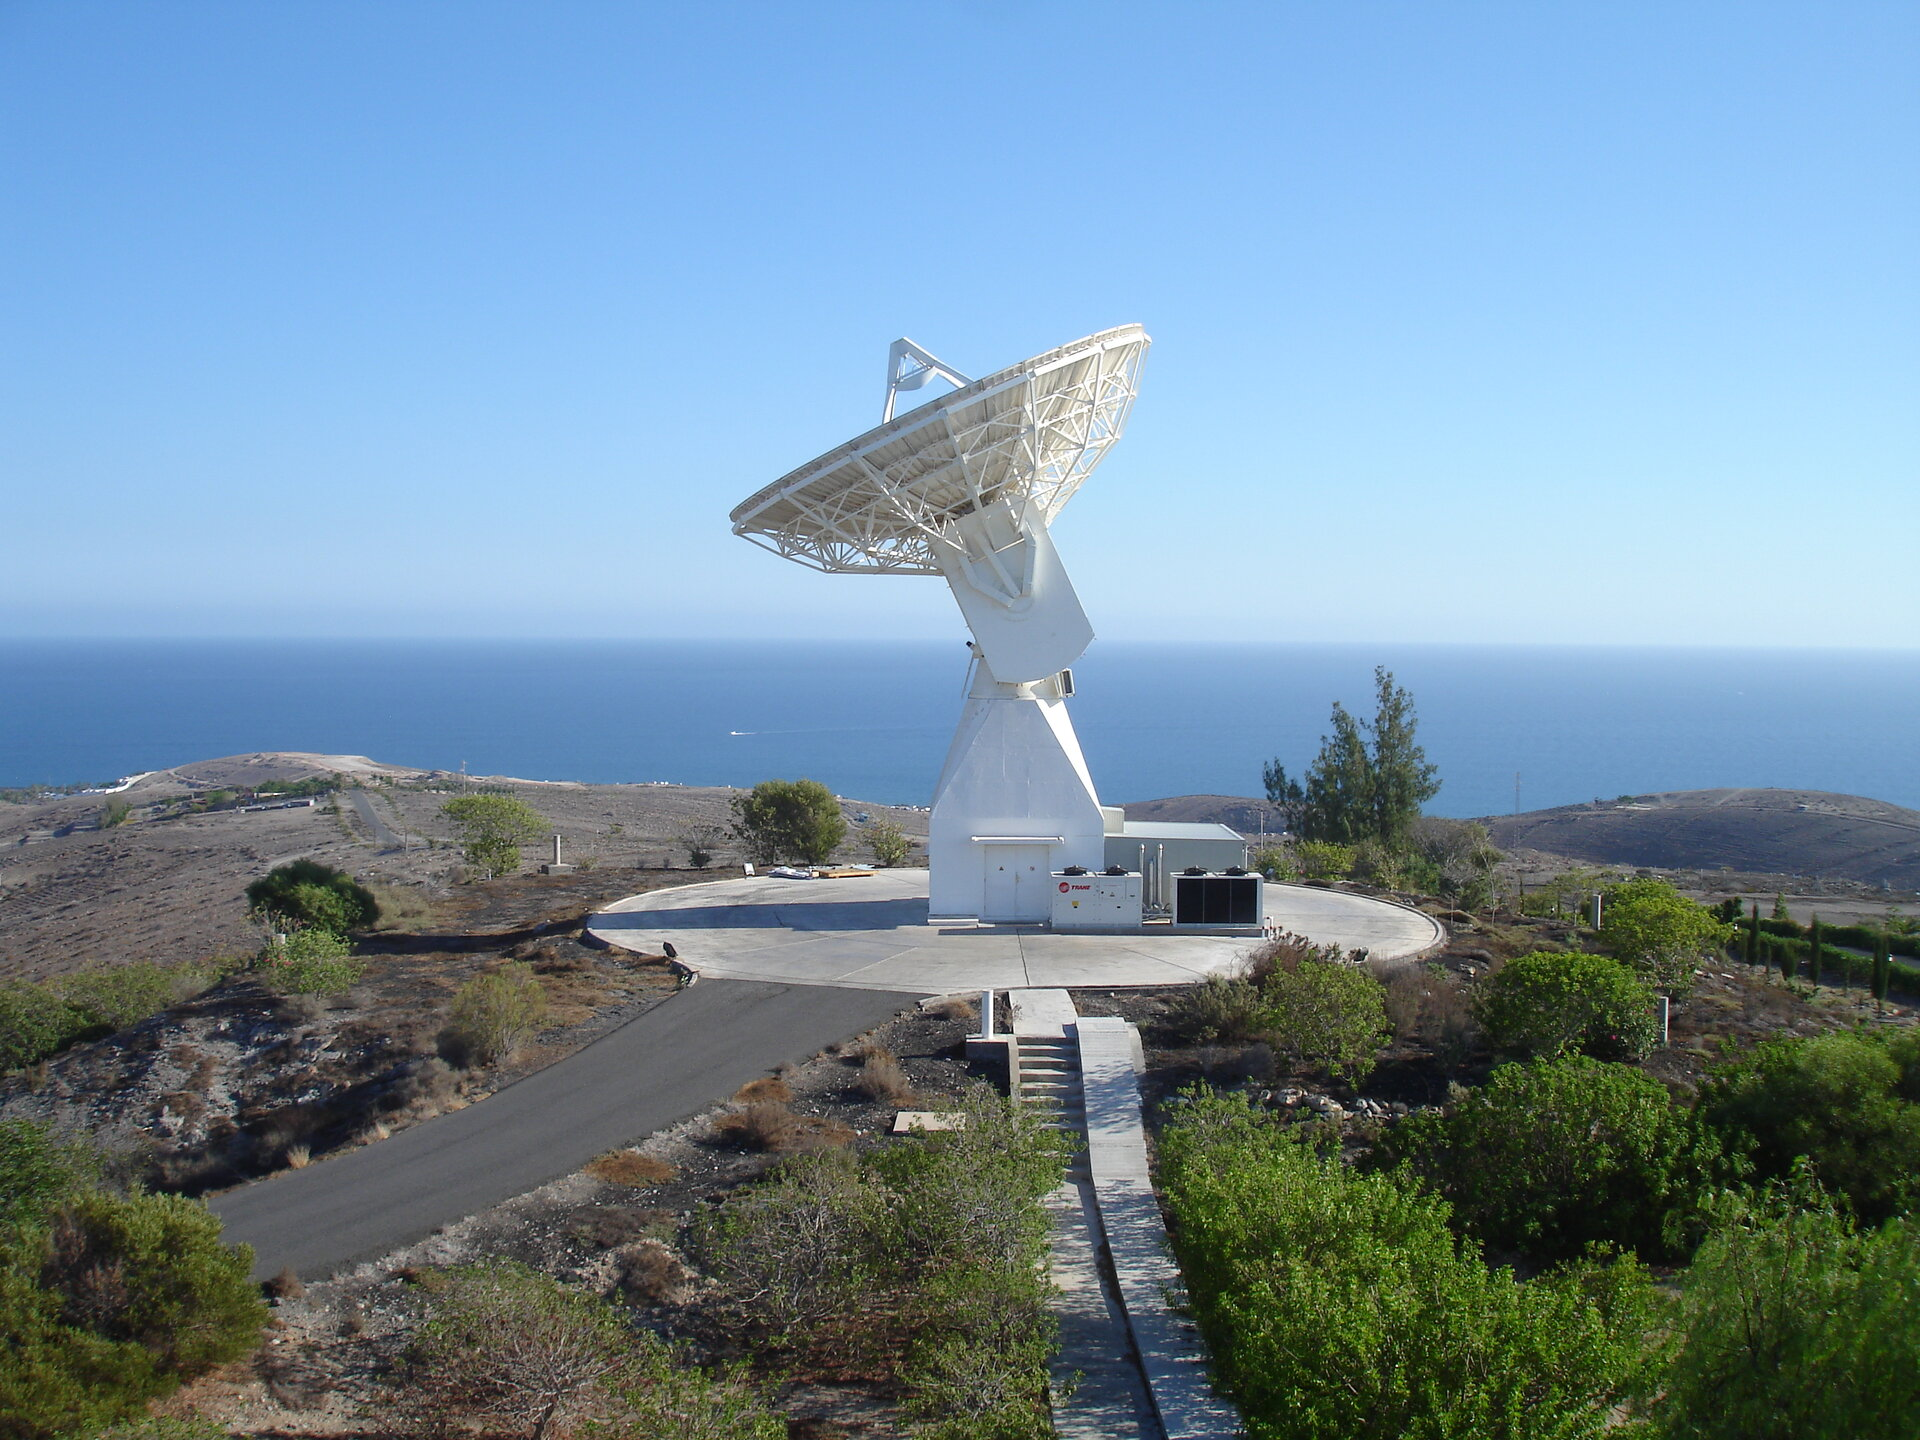 ESA's Maspalomas station today, part of the global ESTRACK network